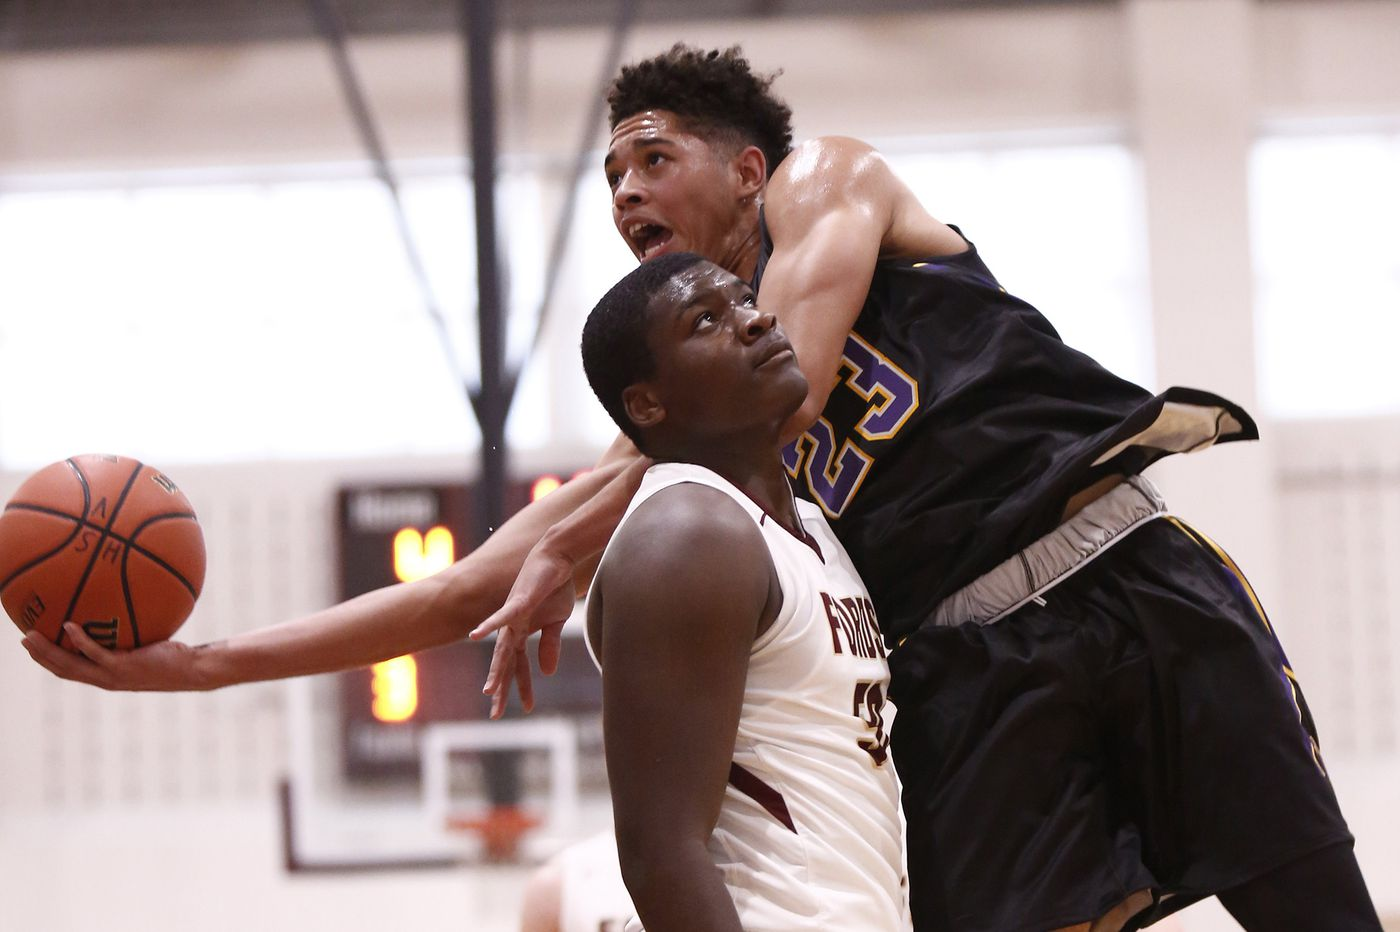 No. 2-ranked Roman Catholic to battle No. 1 Imhotep Charter in must-see basketball showdown